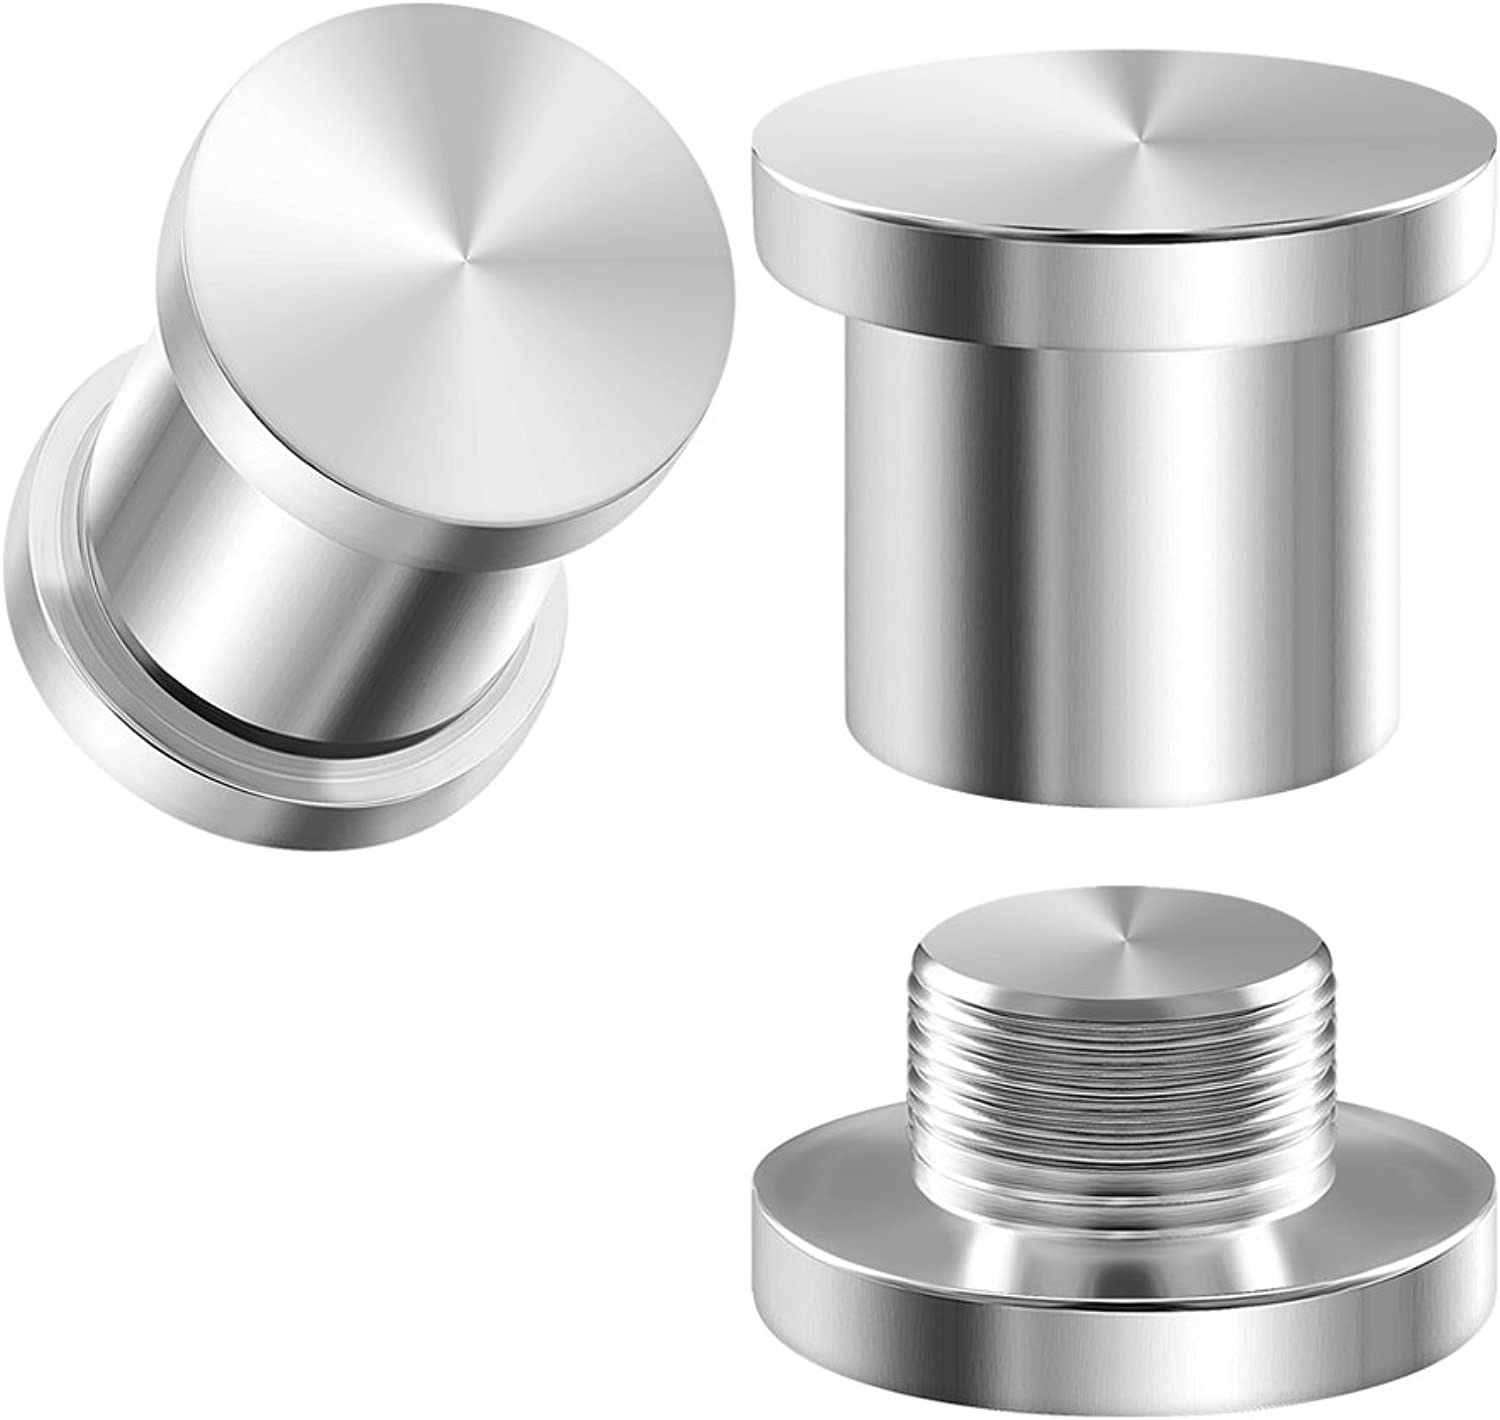 BIG GAUGES Pair of 316L Surgical Steel Internally Tunnels Piercing Jewelry Stretcher Ear Ring Earring Lobe Hollow Stash Plugs